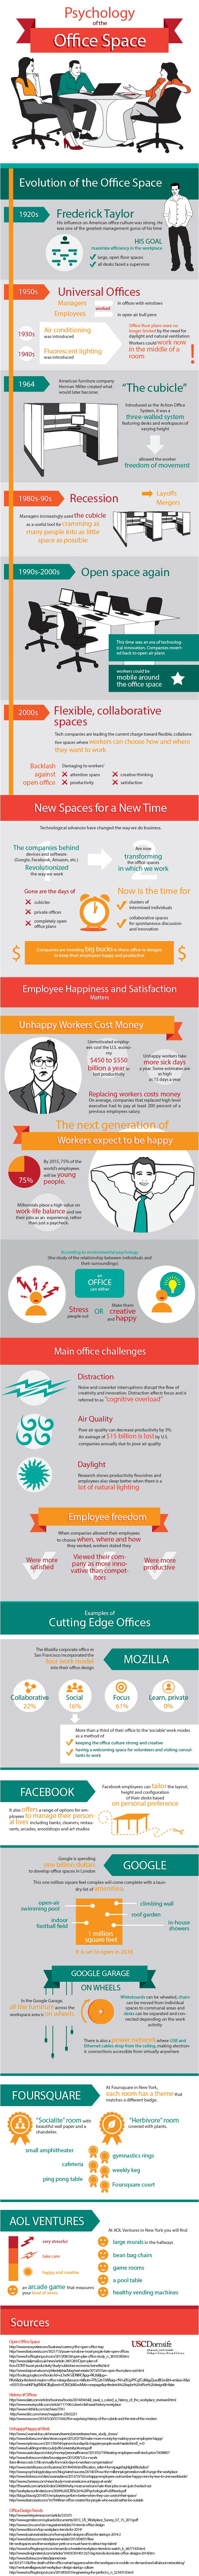 Psychology of the Office Space [#Infographic] | Take It Personel-ly